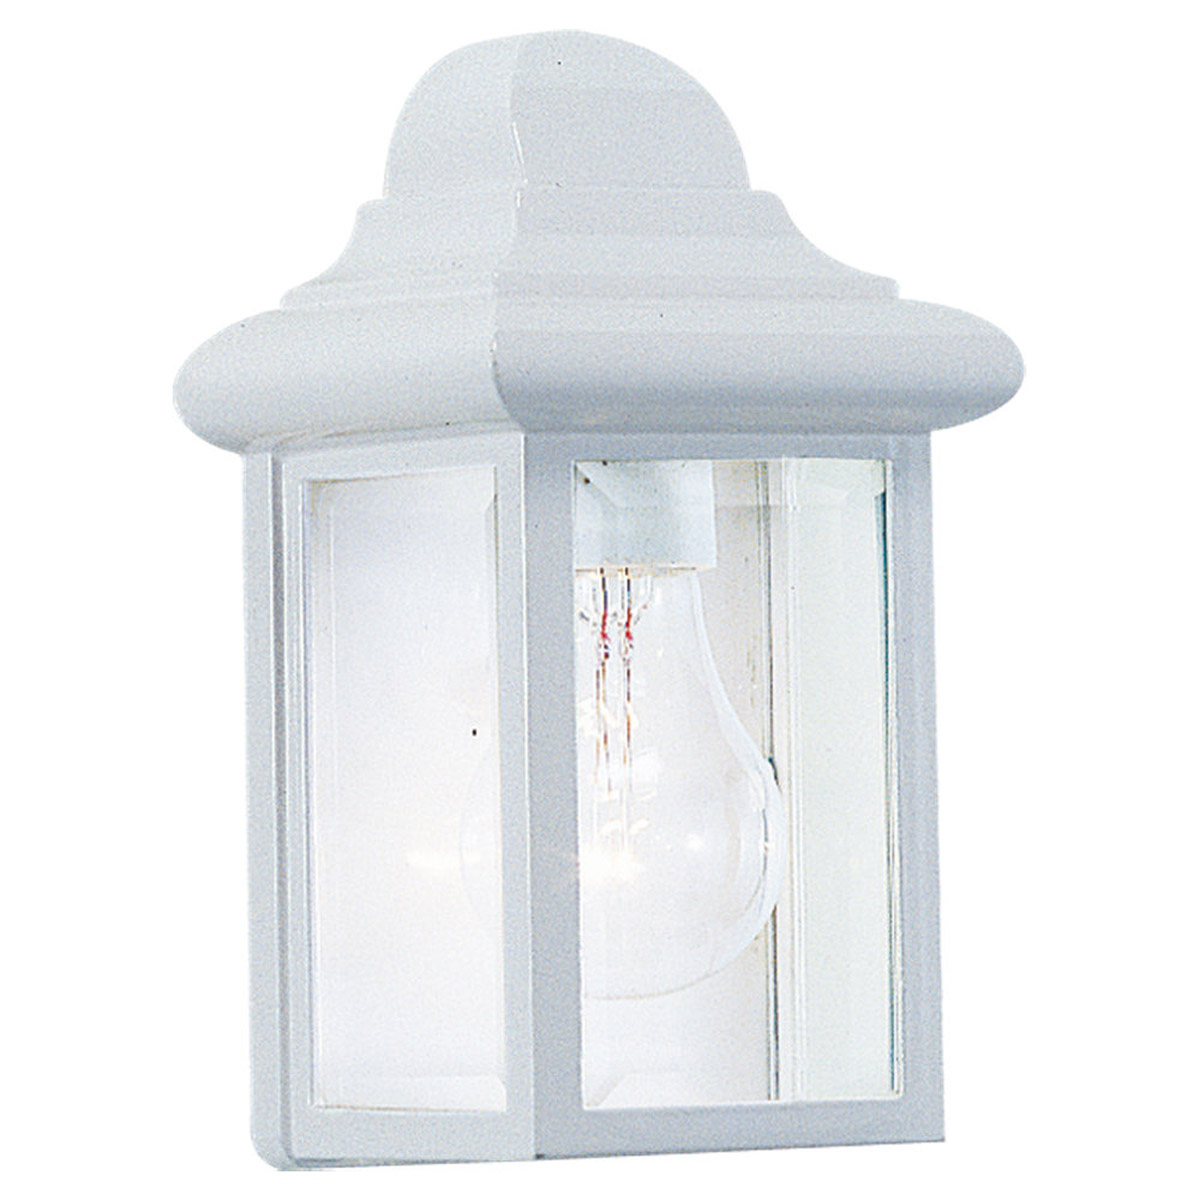 Sea Gull Lighting Mullberry Hill 1 Light Outdoor Wall Lantern in White 8588-15